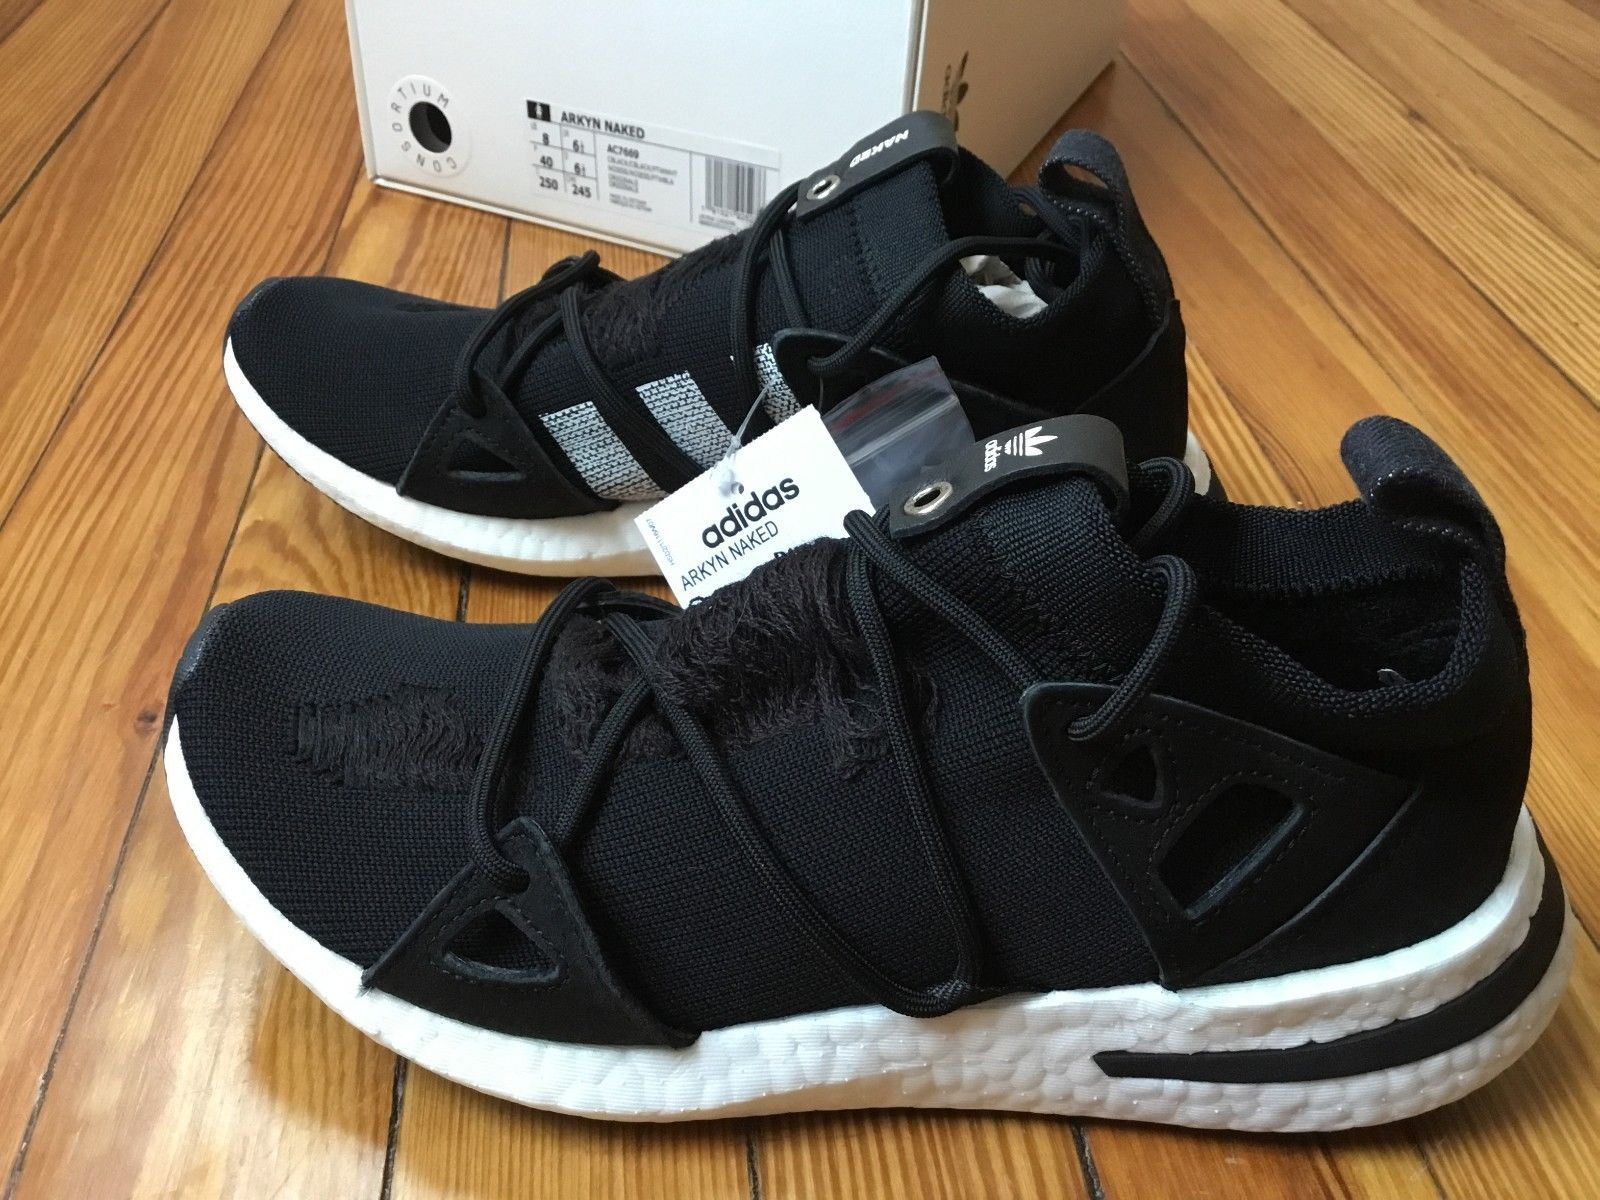 new styles 0ffdb e8bde Adidas Arkyn Naked womens shoes sneakers AC7669 black multiple sizes